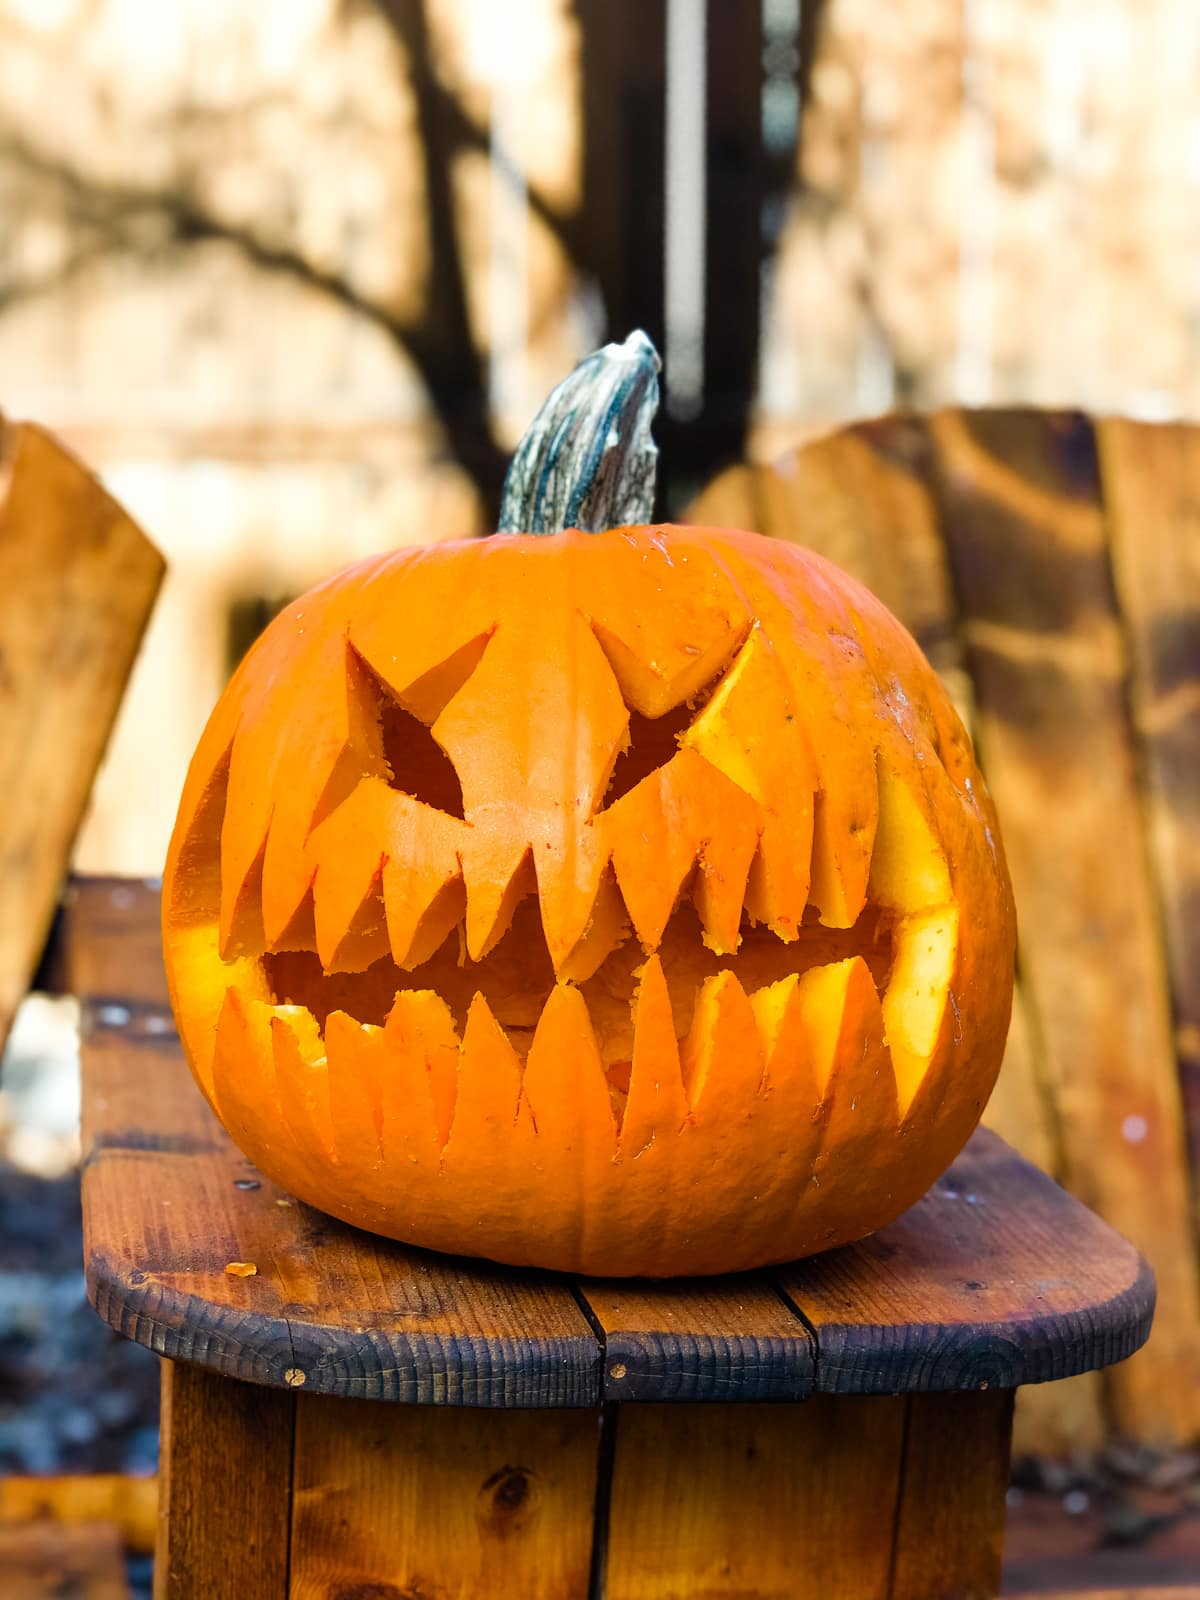 a large orange pumpkin is carved with a wide jagged smile and X eyes